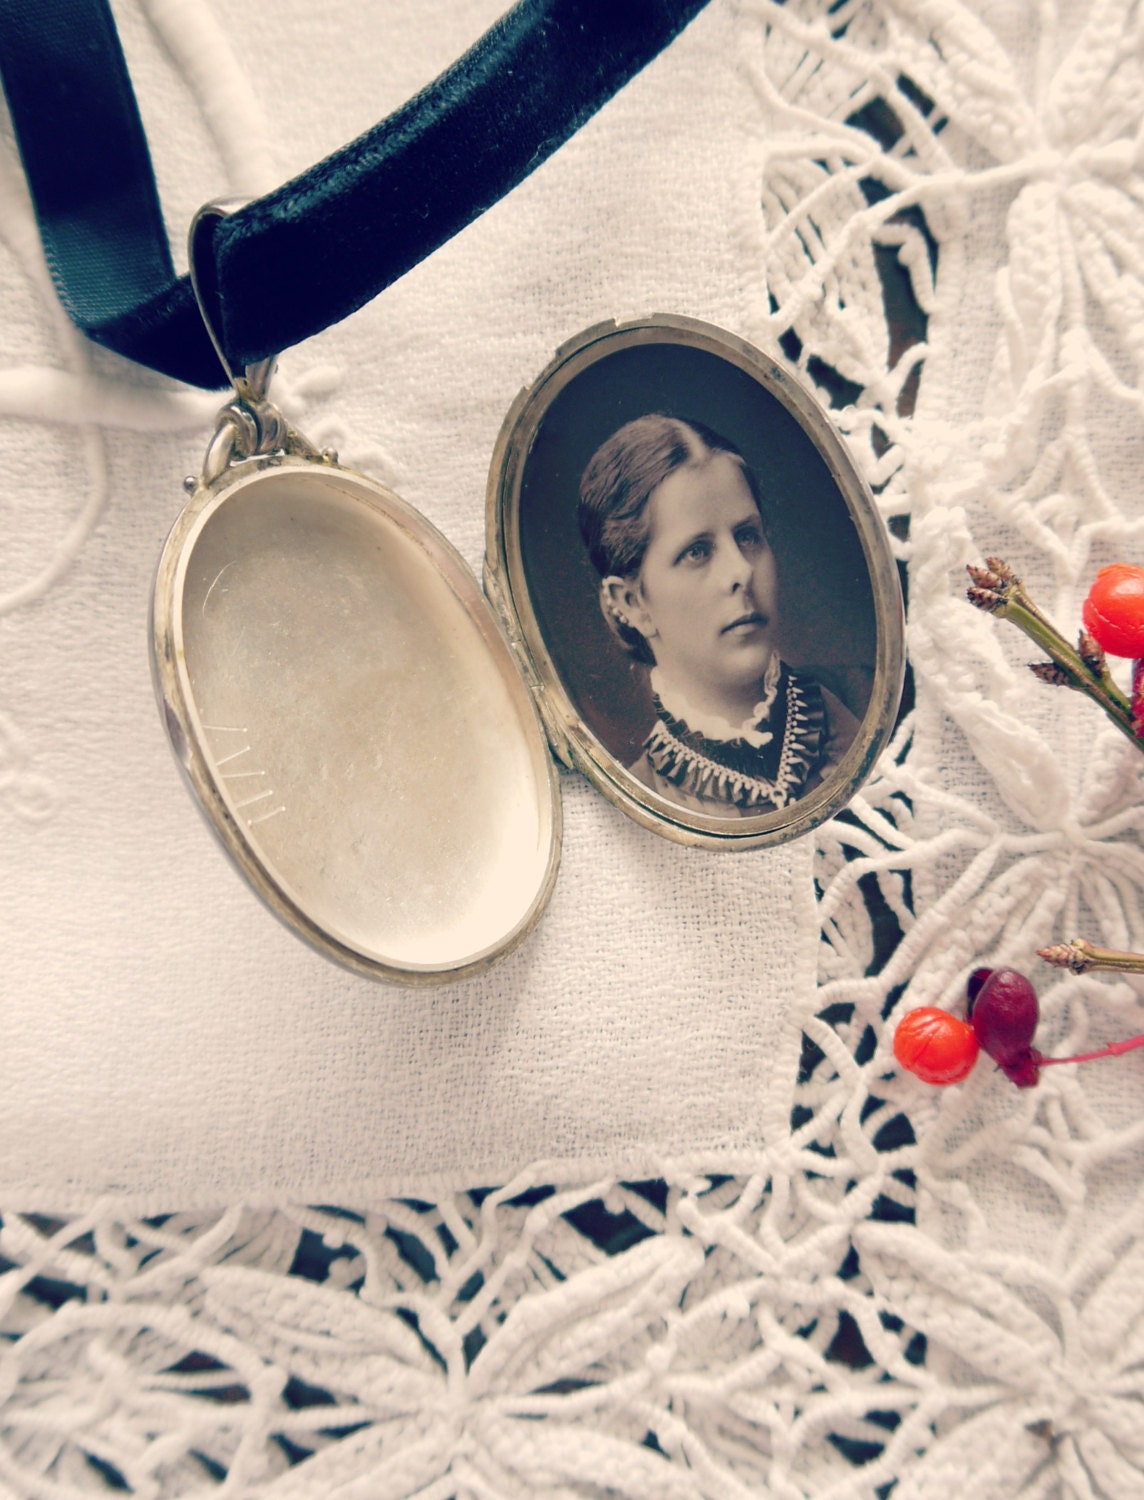 This is my great great grandmother Pauline as a girl, probably at the age of fifteen. On the picture, she is wearing this exact locket on a bookchain.